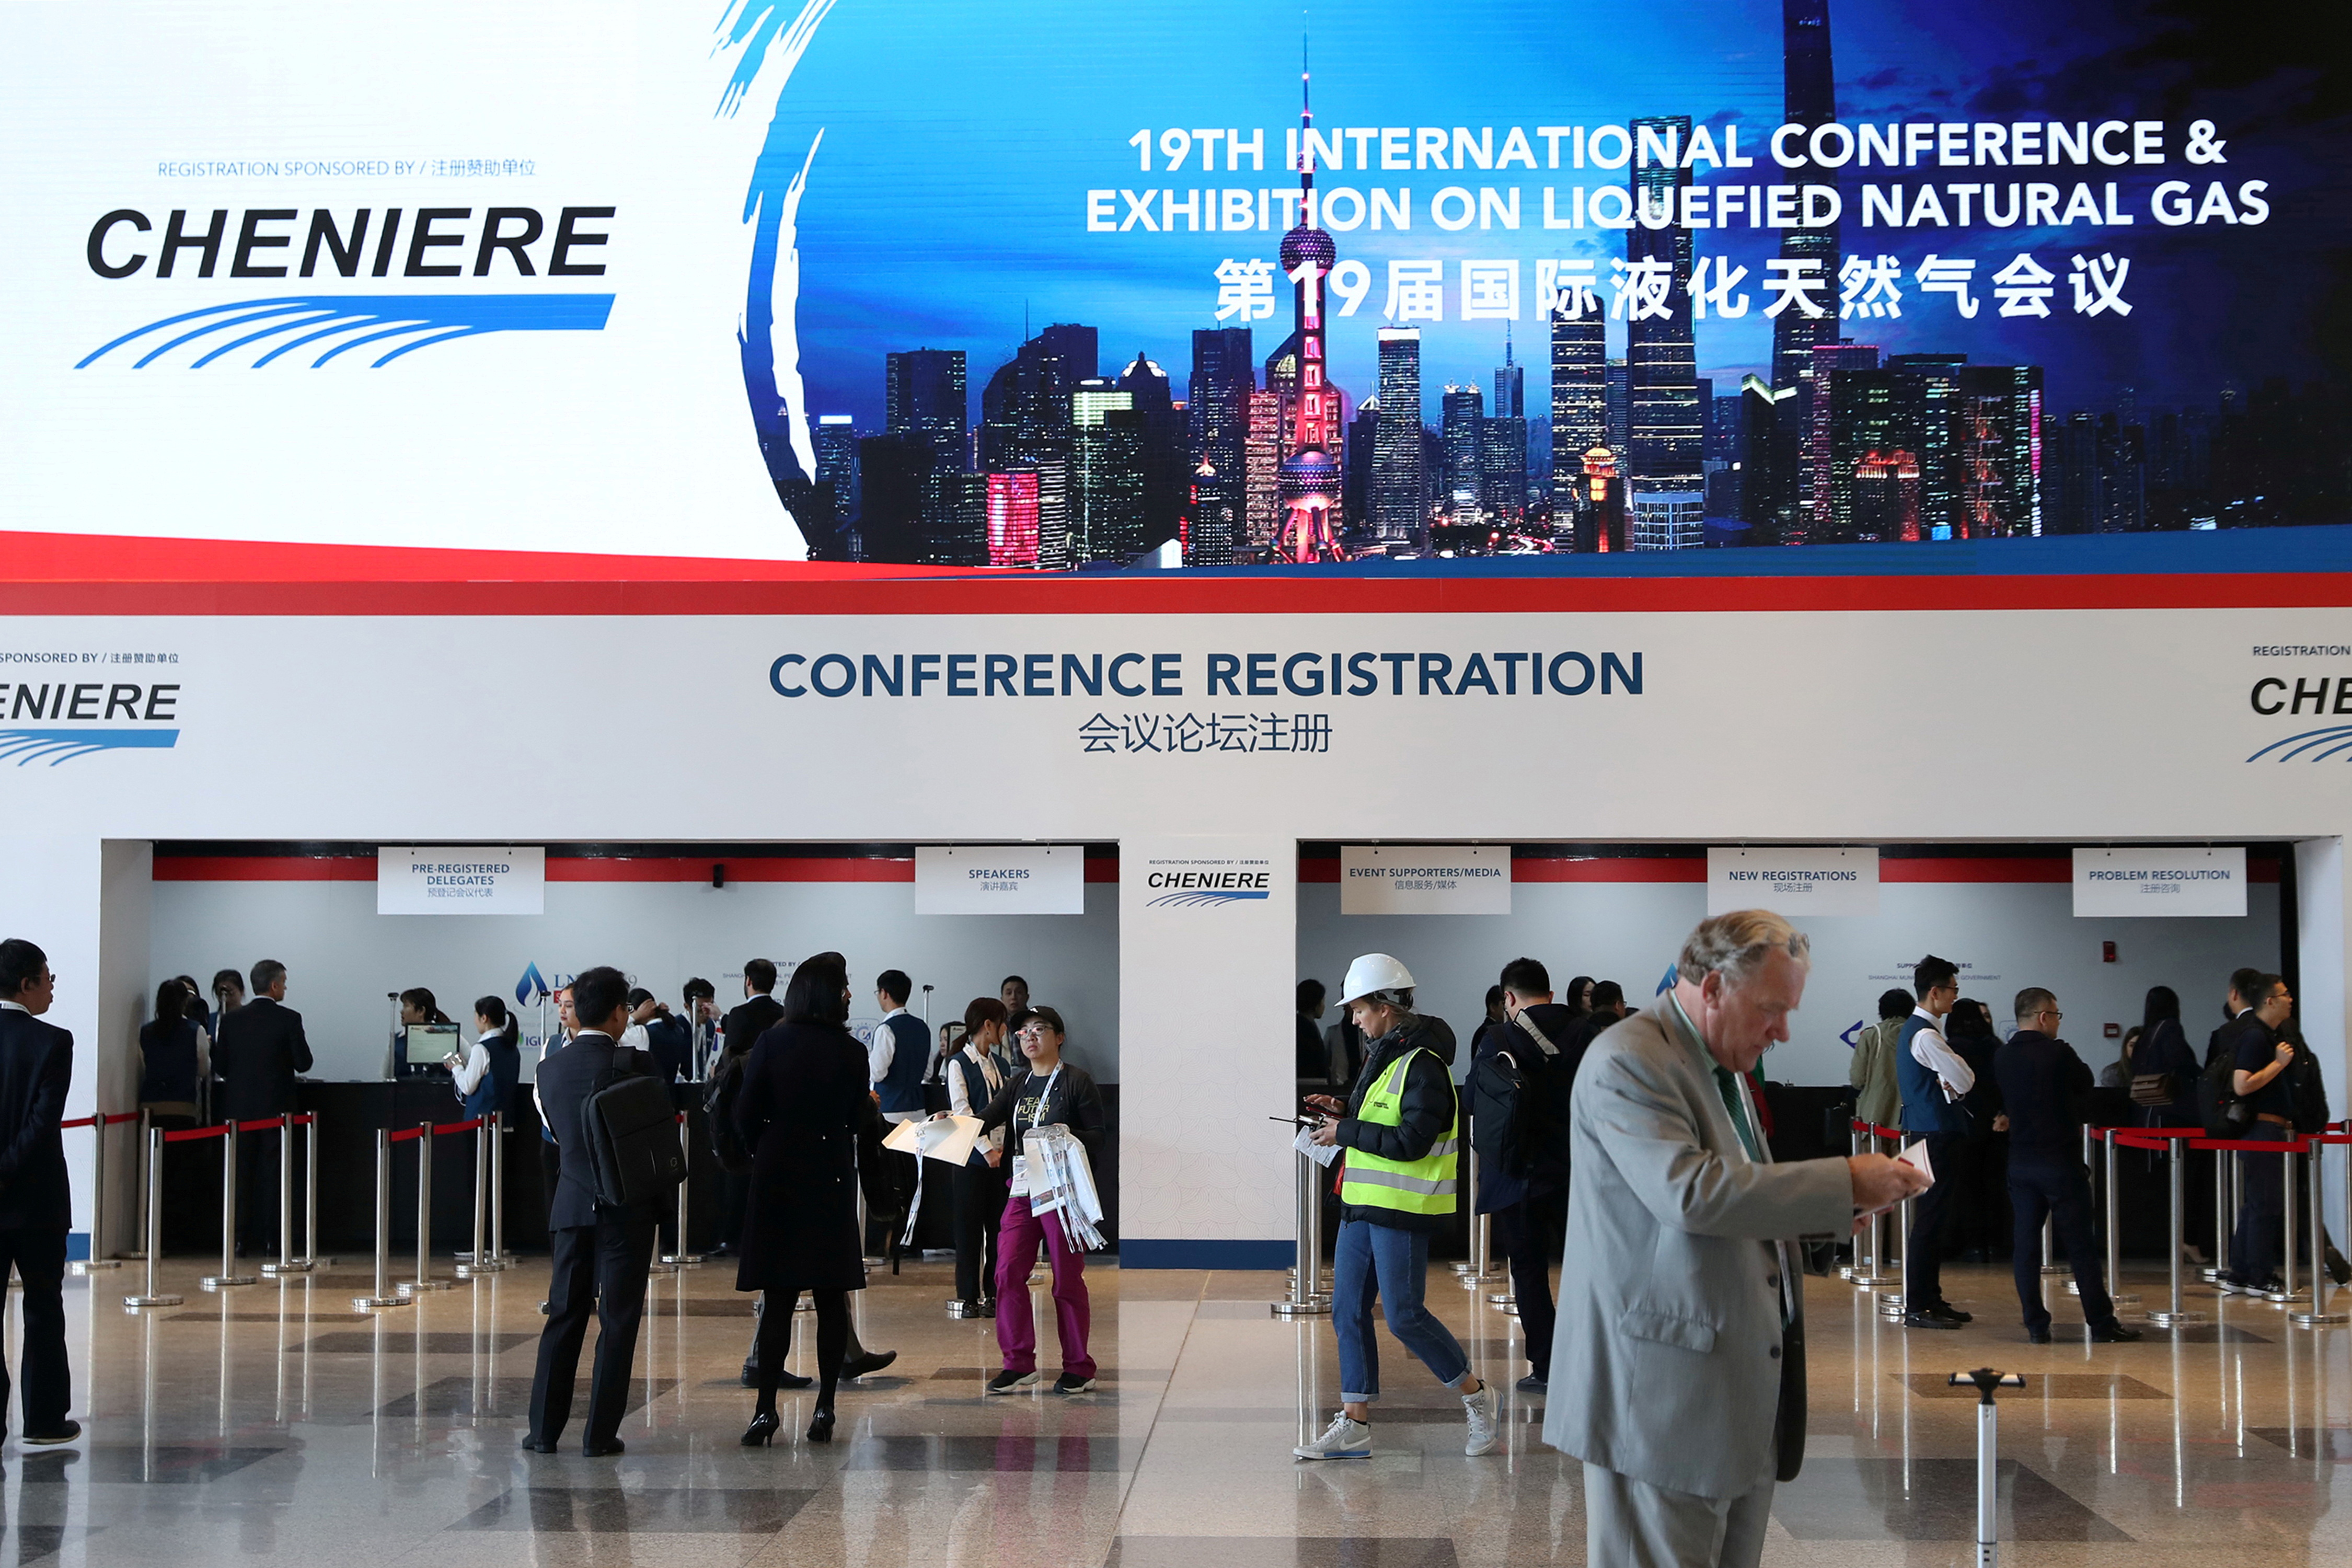 A sign of U.S LNG company Cheniere is seen at the registration counter at the International Conference & Exhibition on Liquefied Natural Gas (LNG2019) in Shanghai, China April 1, 2019. REUTERS/Stringer